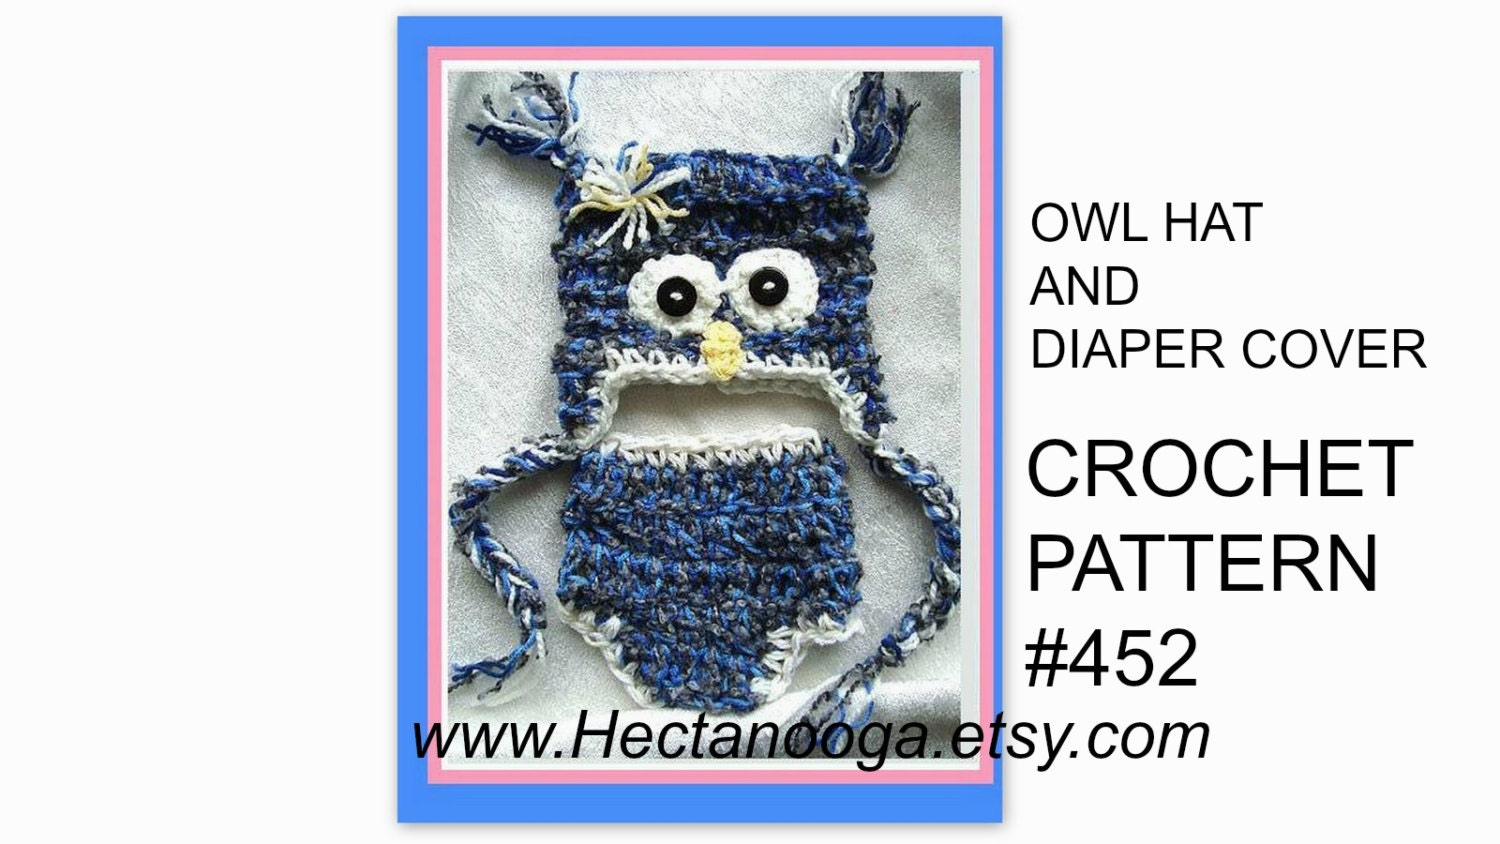 CROCHET PATTERN baby hat and diaper cover owl num. 452